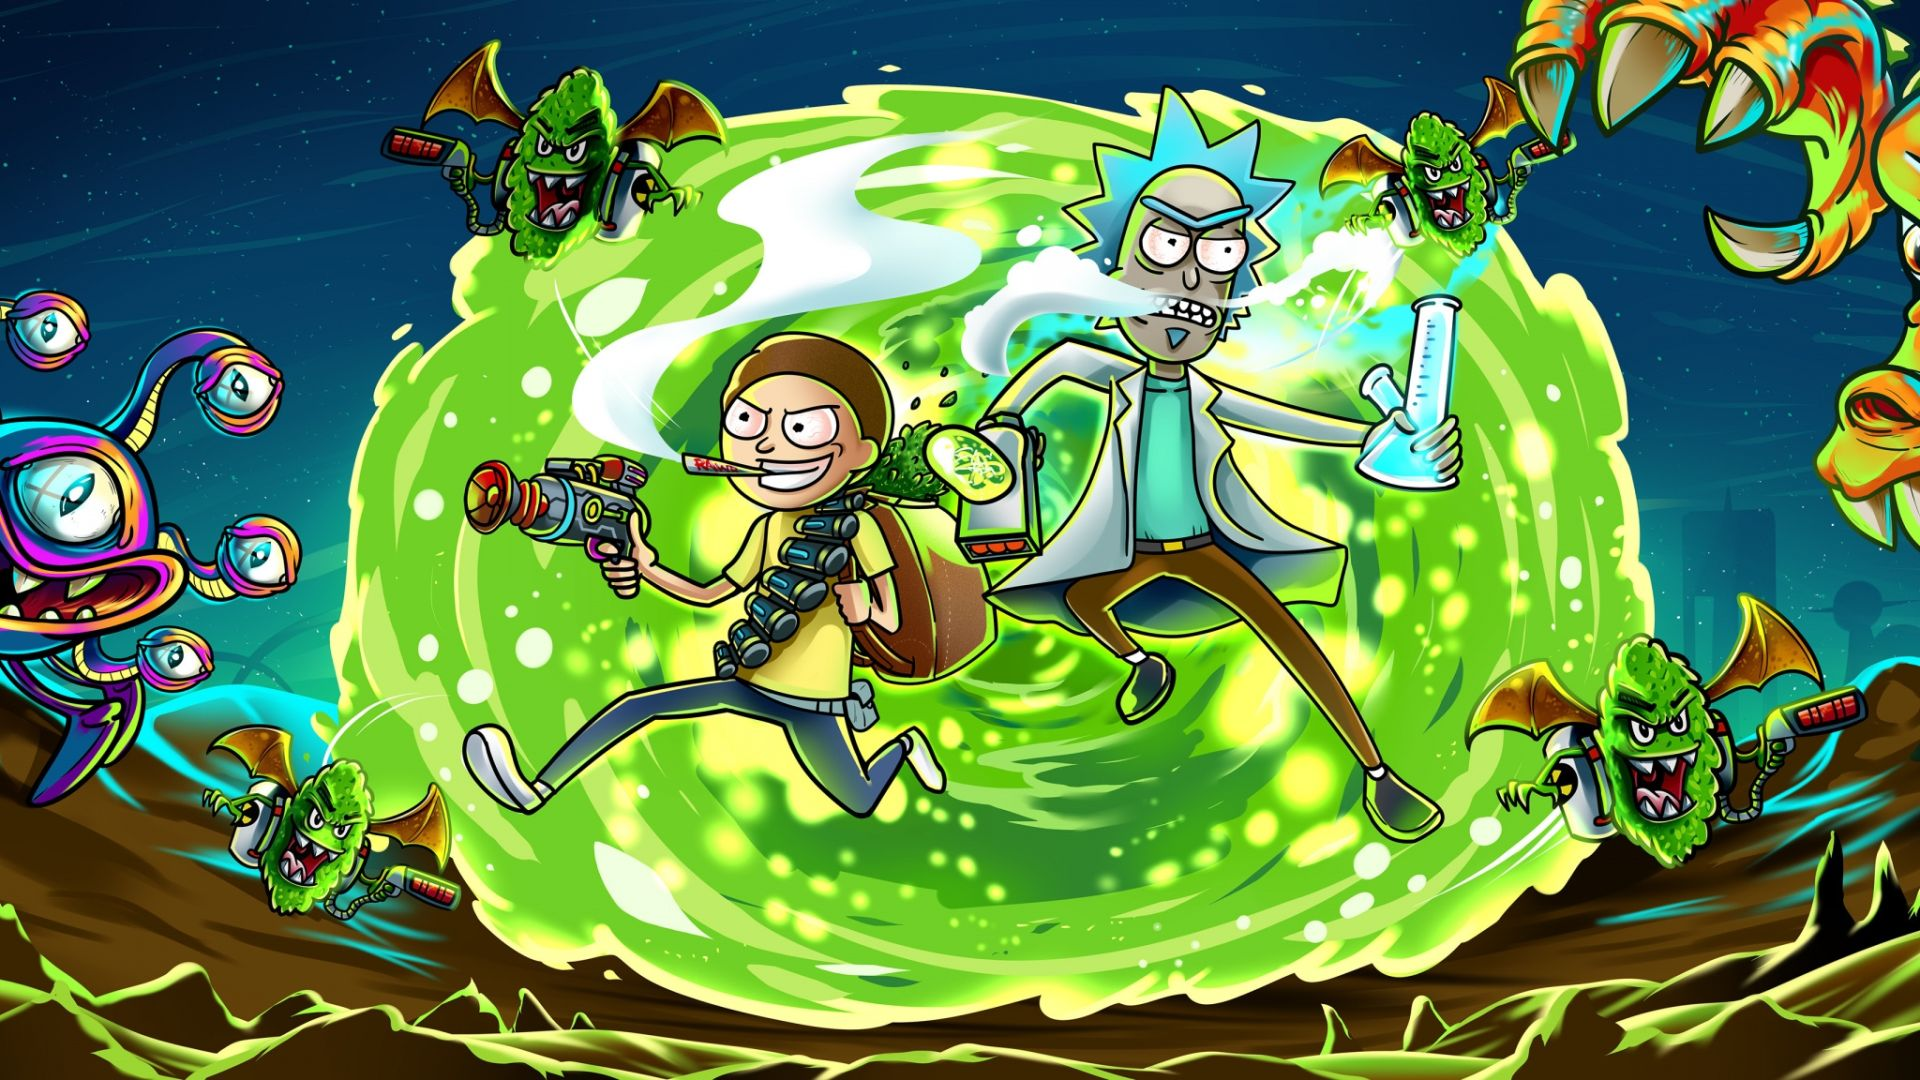 Rick and Morty Season 4 Episode 6 Release Date Speculations